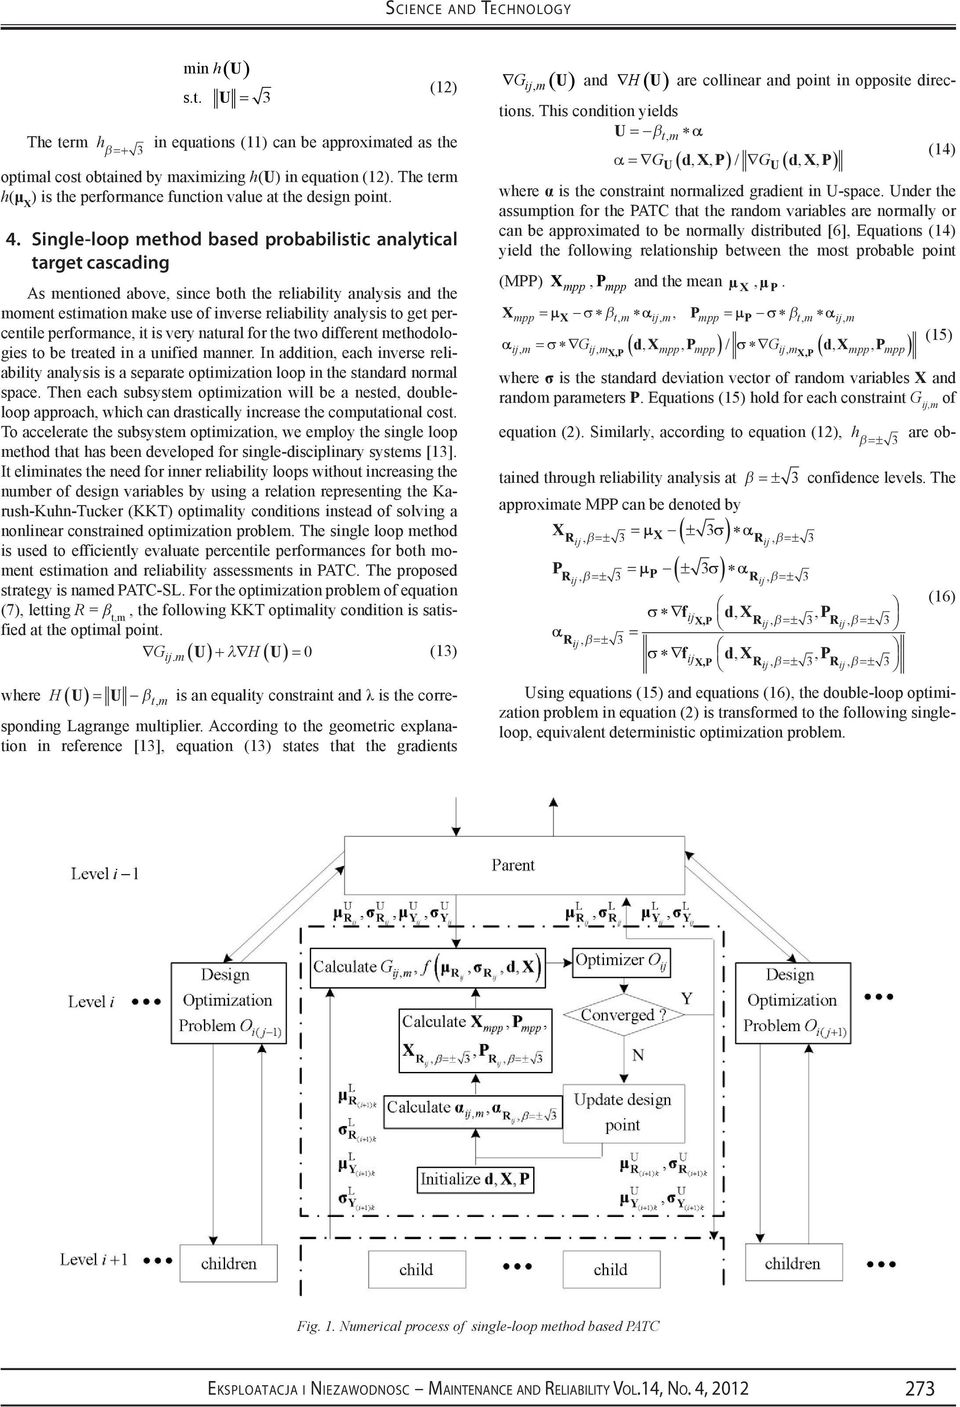 Single-loop method based probabilistic analytical target cascading As mentioned above, since both the reliability analysis and the moment estimation make use of inverse reliability analysis to get